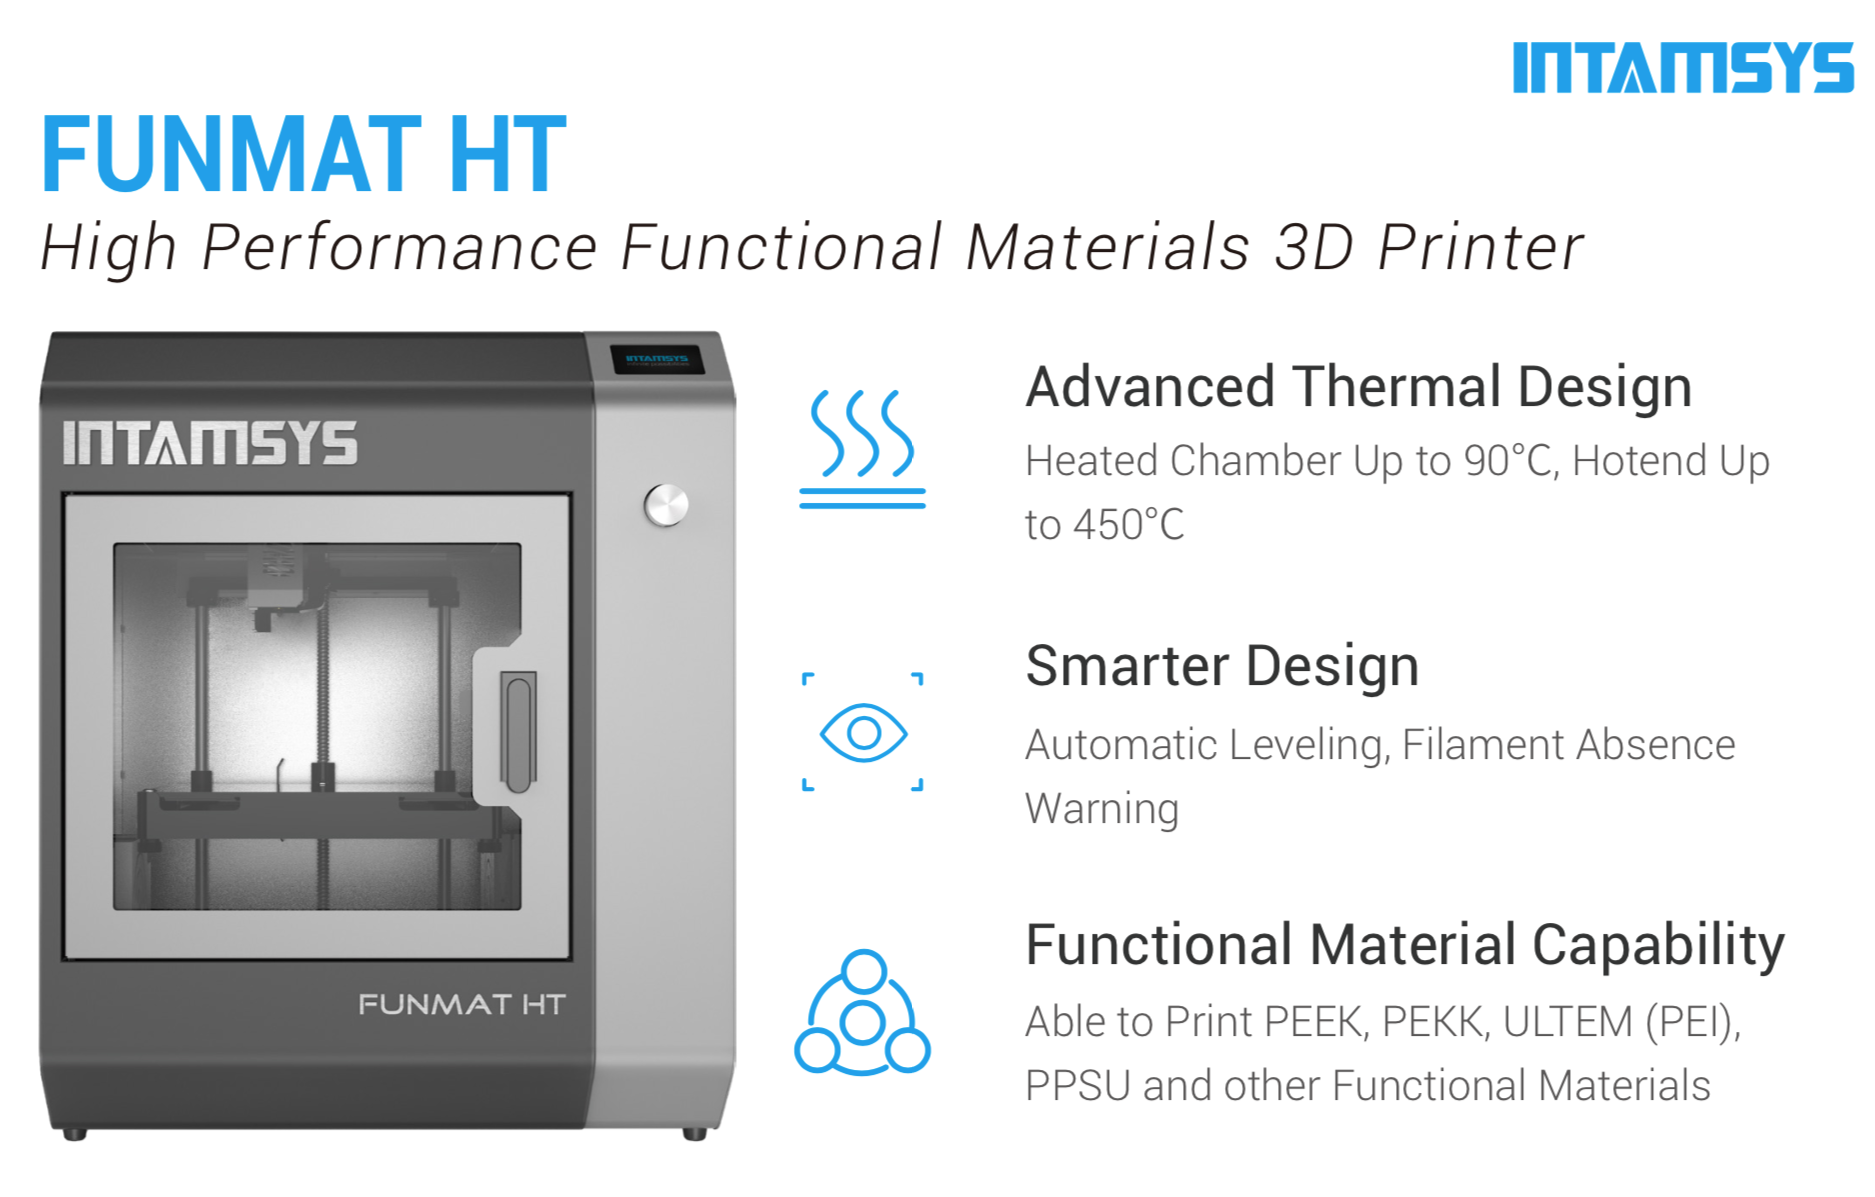 Intamsys Funmat HT 3D Printer Description 2